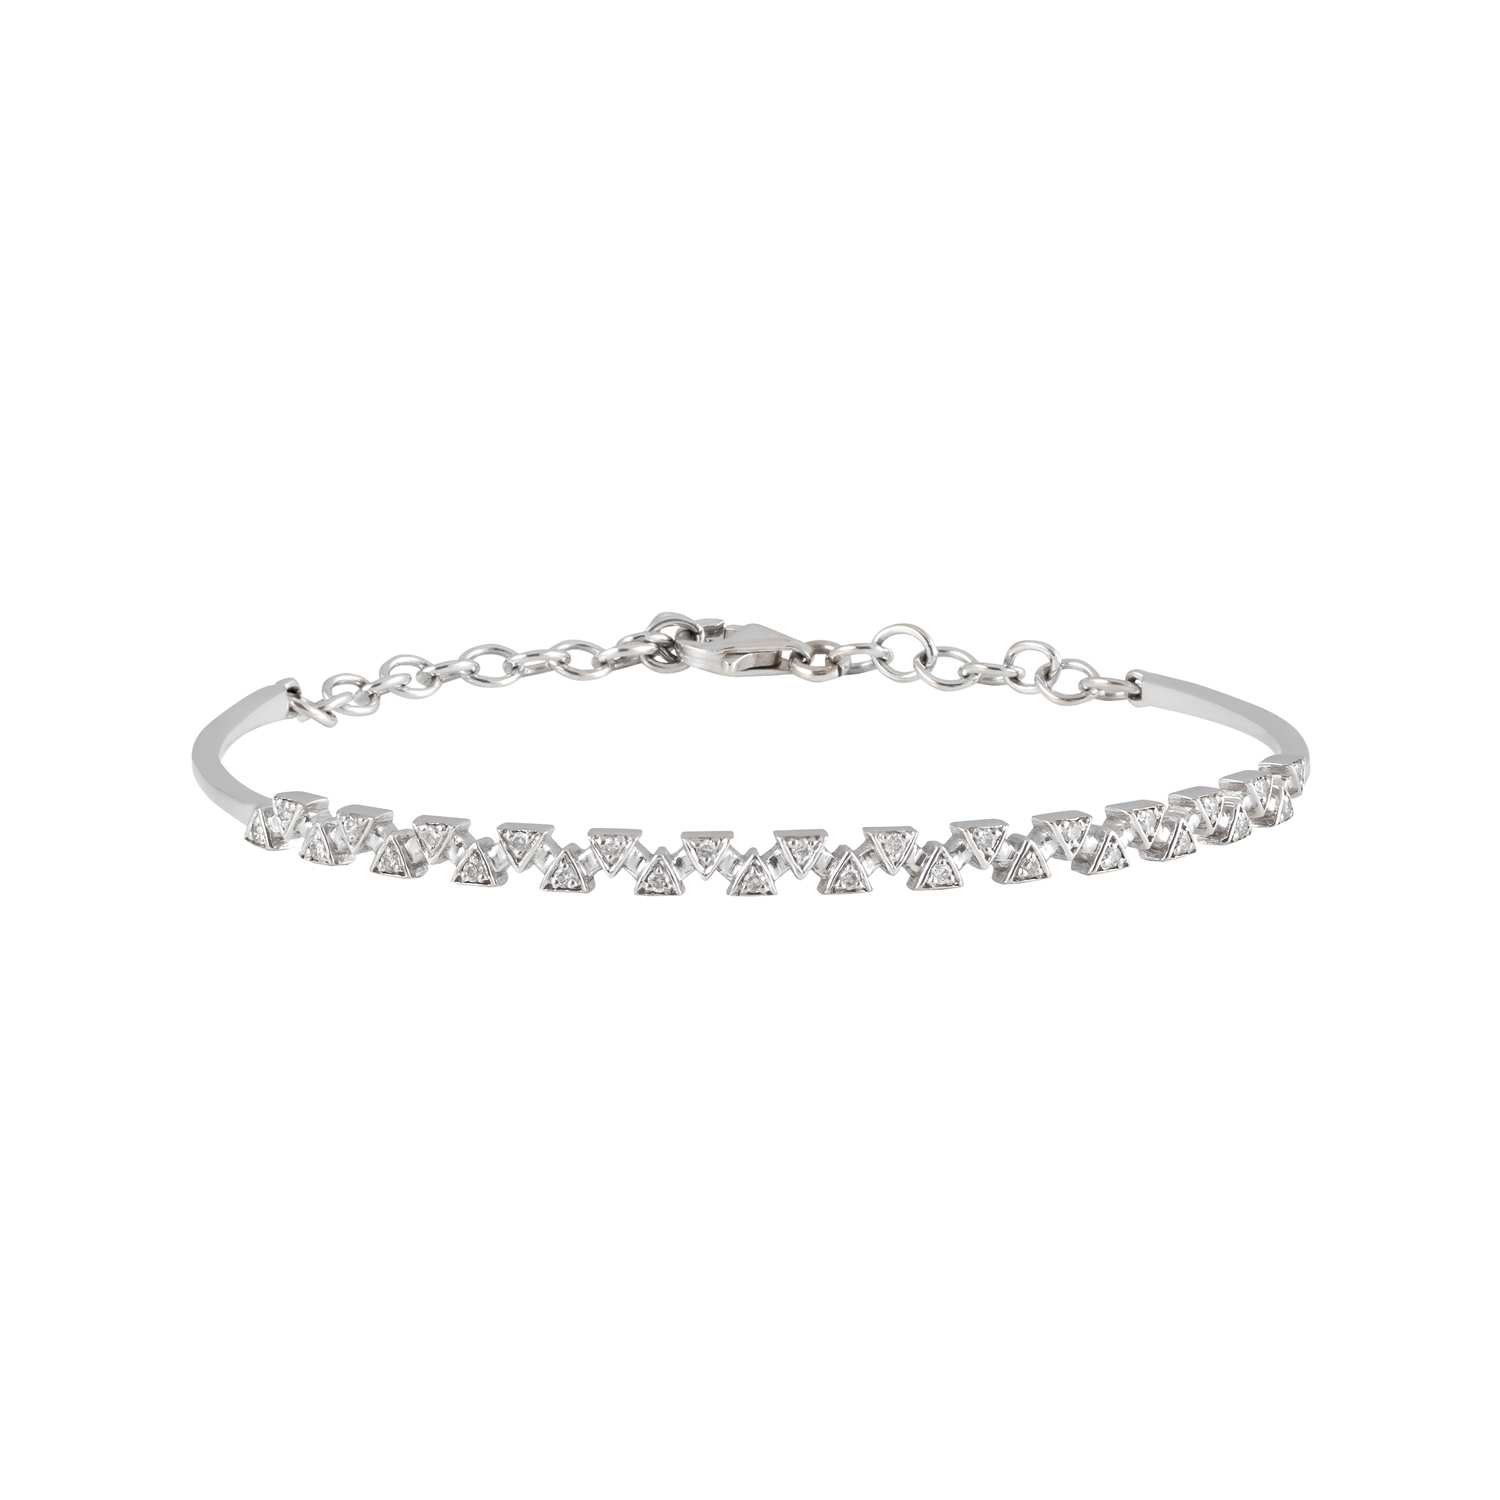 DAOU JEWELLERY Sparks Bangle - White Gold